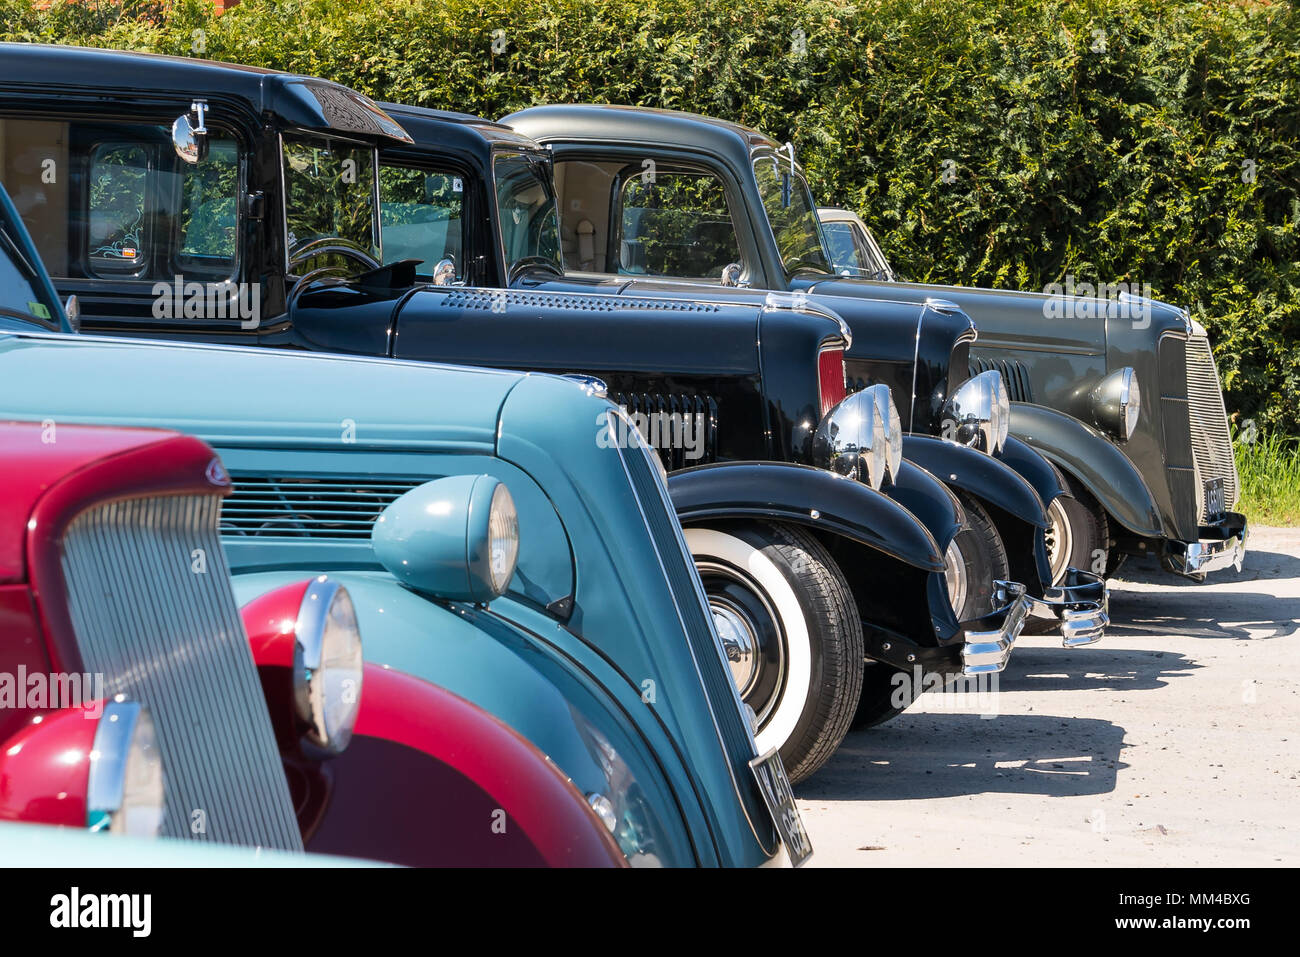 American Hot Rods Stock Photos & American Hot Rods Stock Images - Alamy